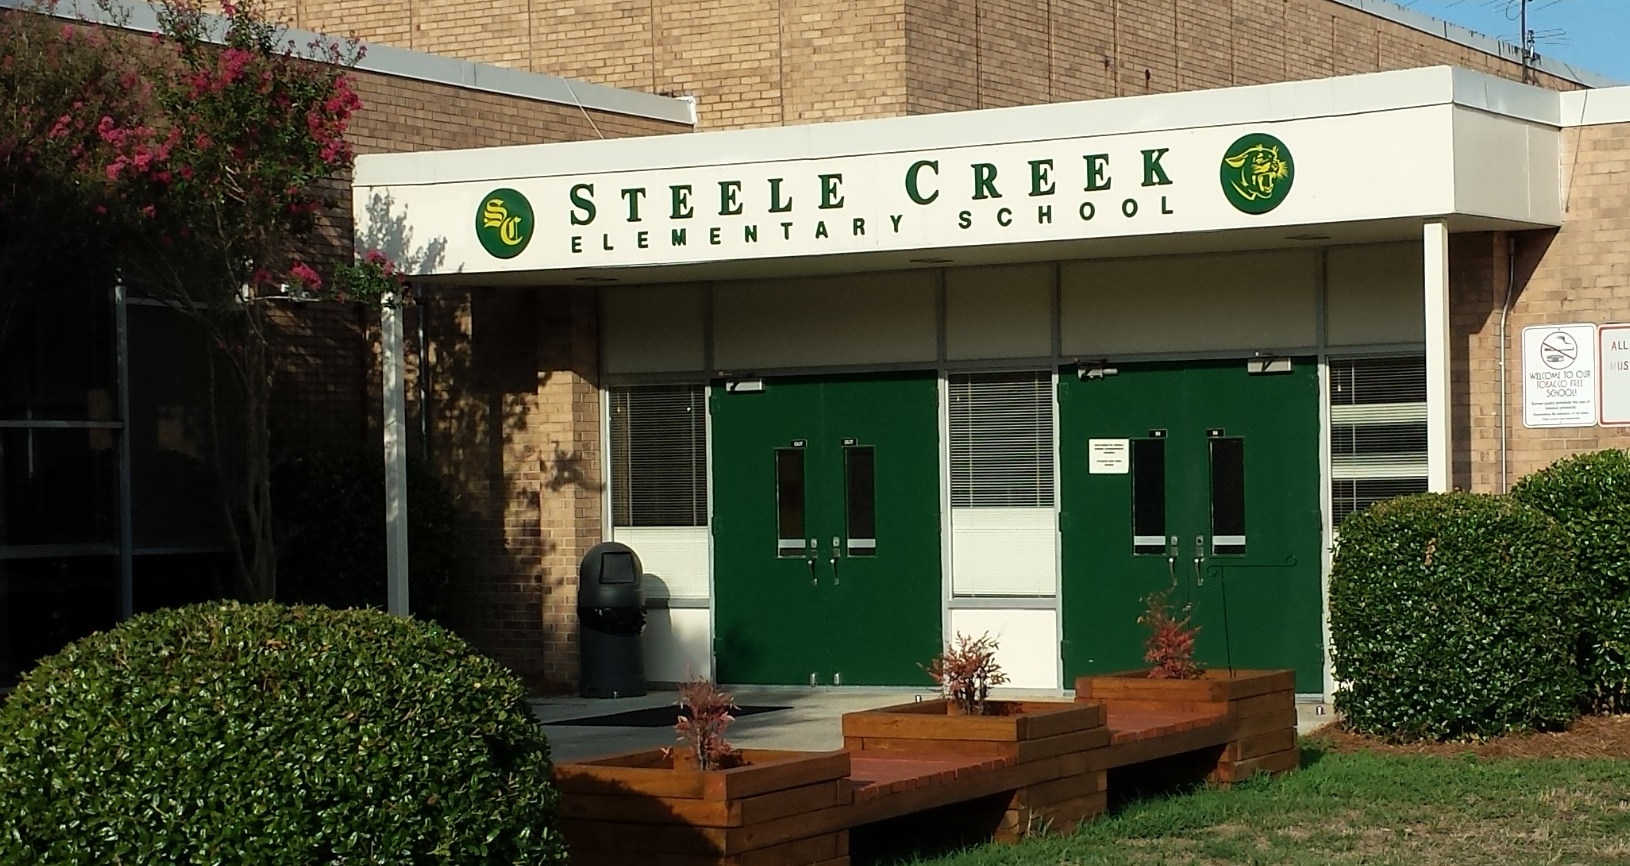 Steele Creek Elementary School 1968